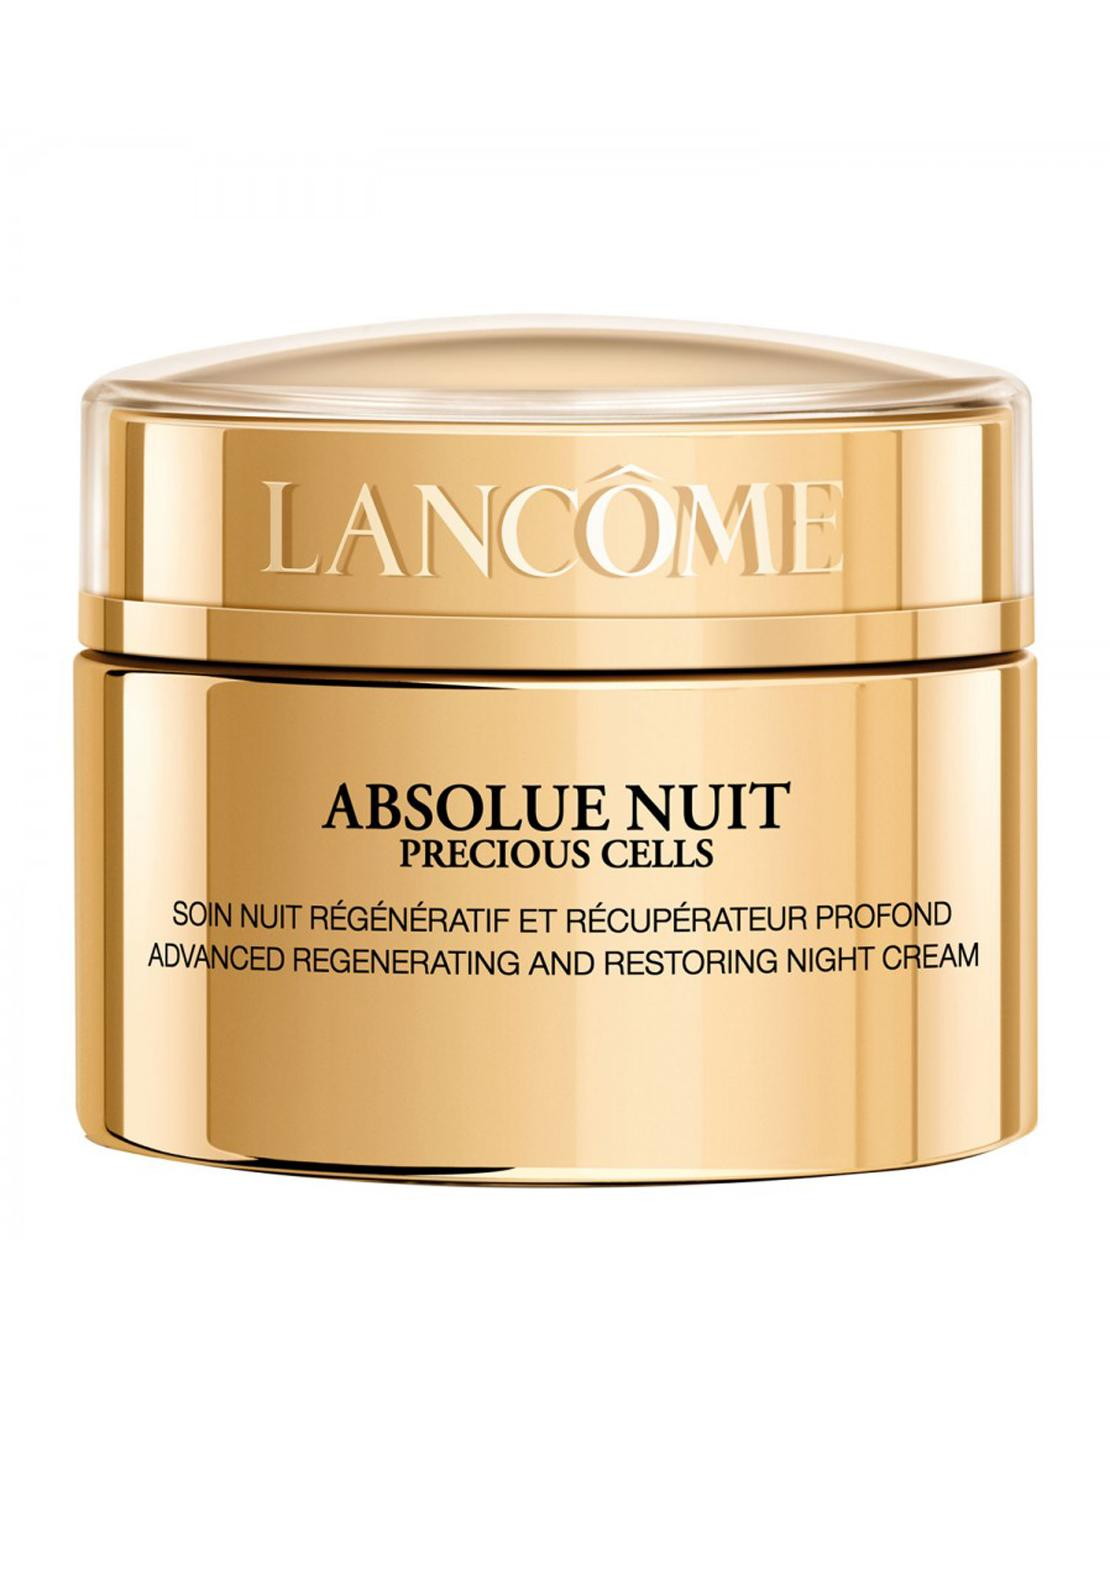 Lancome Absolue Nuit Precious Cells Night Cream 50ml by Lancome